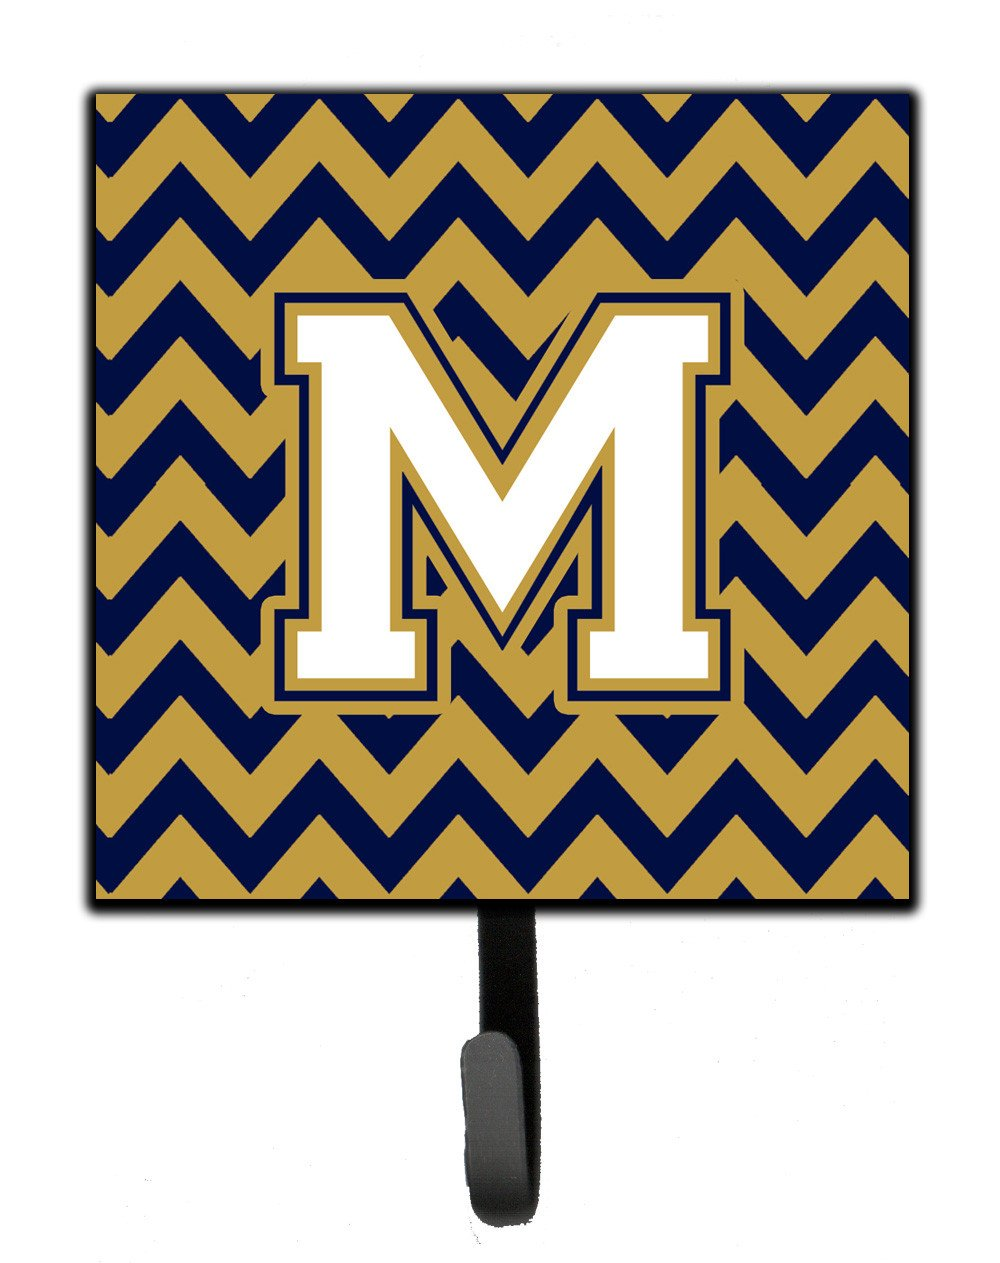 Letter M Chevron Navy Blue and Gold Leash or Key Holder CJ1057-MSH4 by Caroline's Treasures